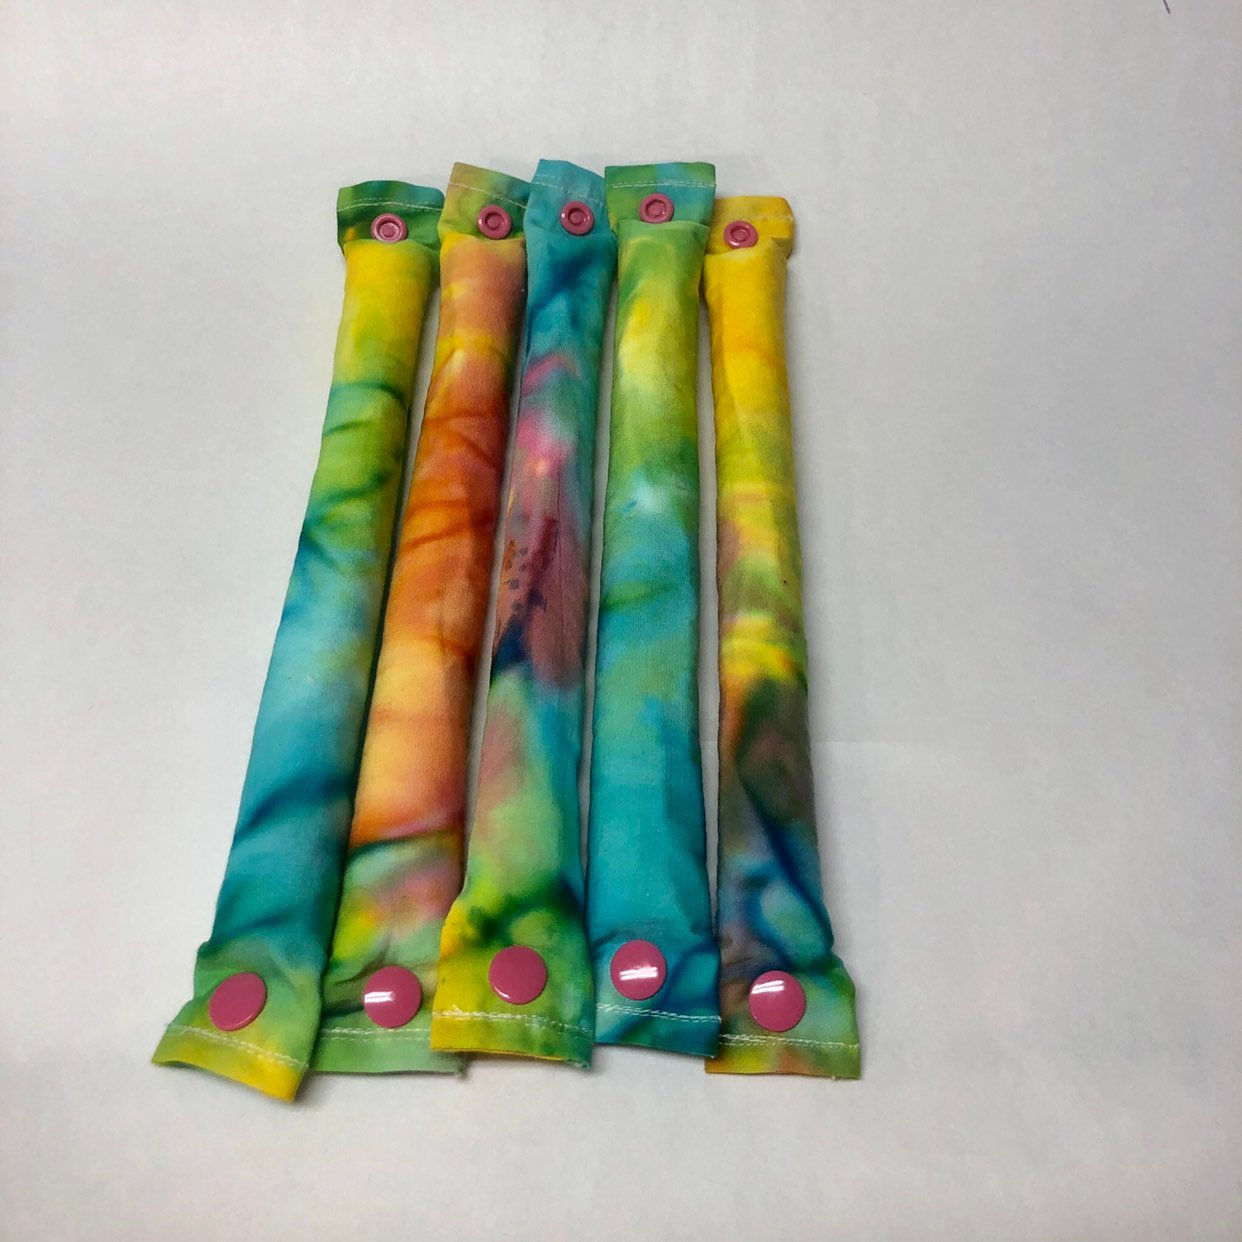 Tie Dye Fabric Hair Rollers / Soft Fabric Rollers / Hair Curlers / Hair Accessories - My Easy Curls